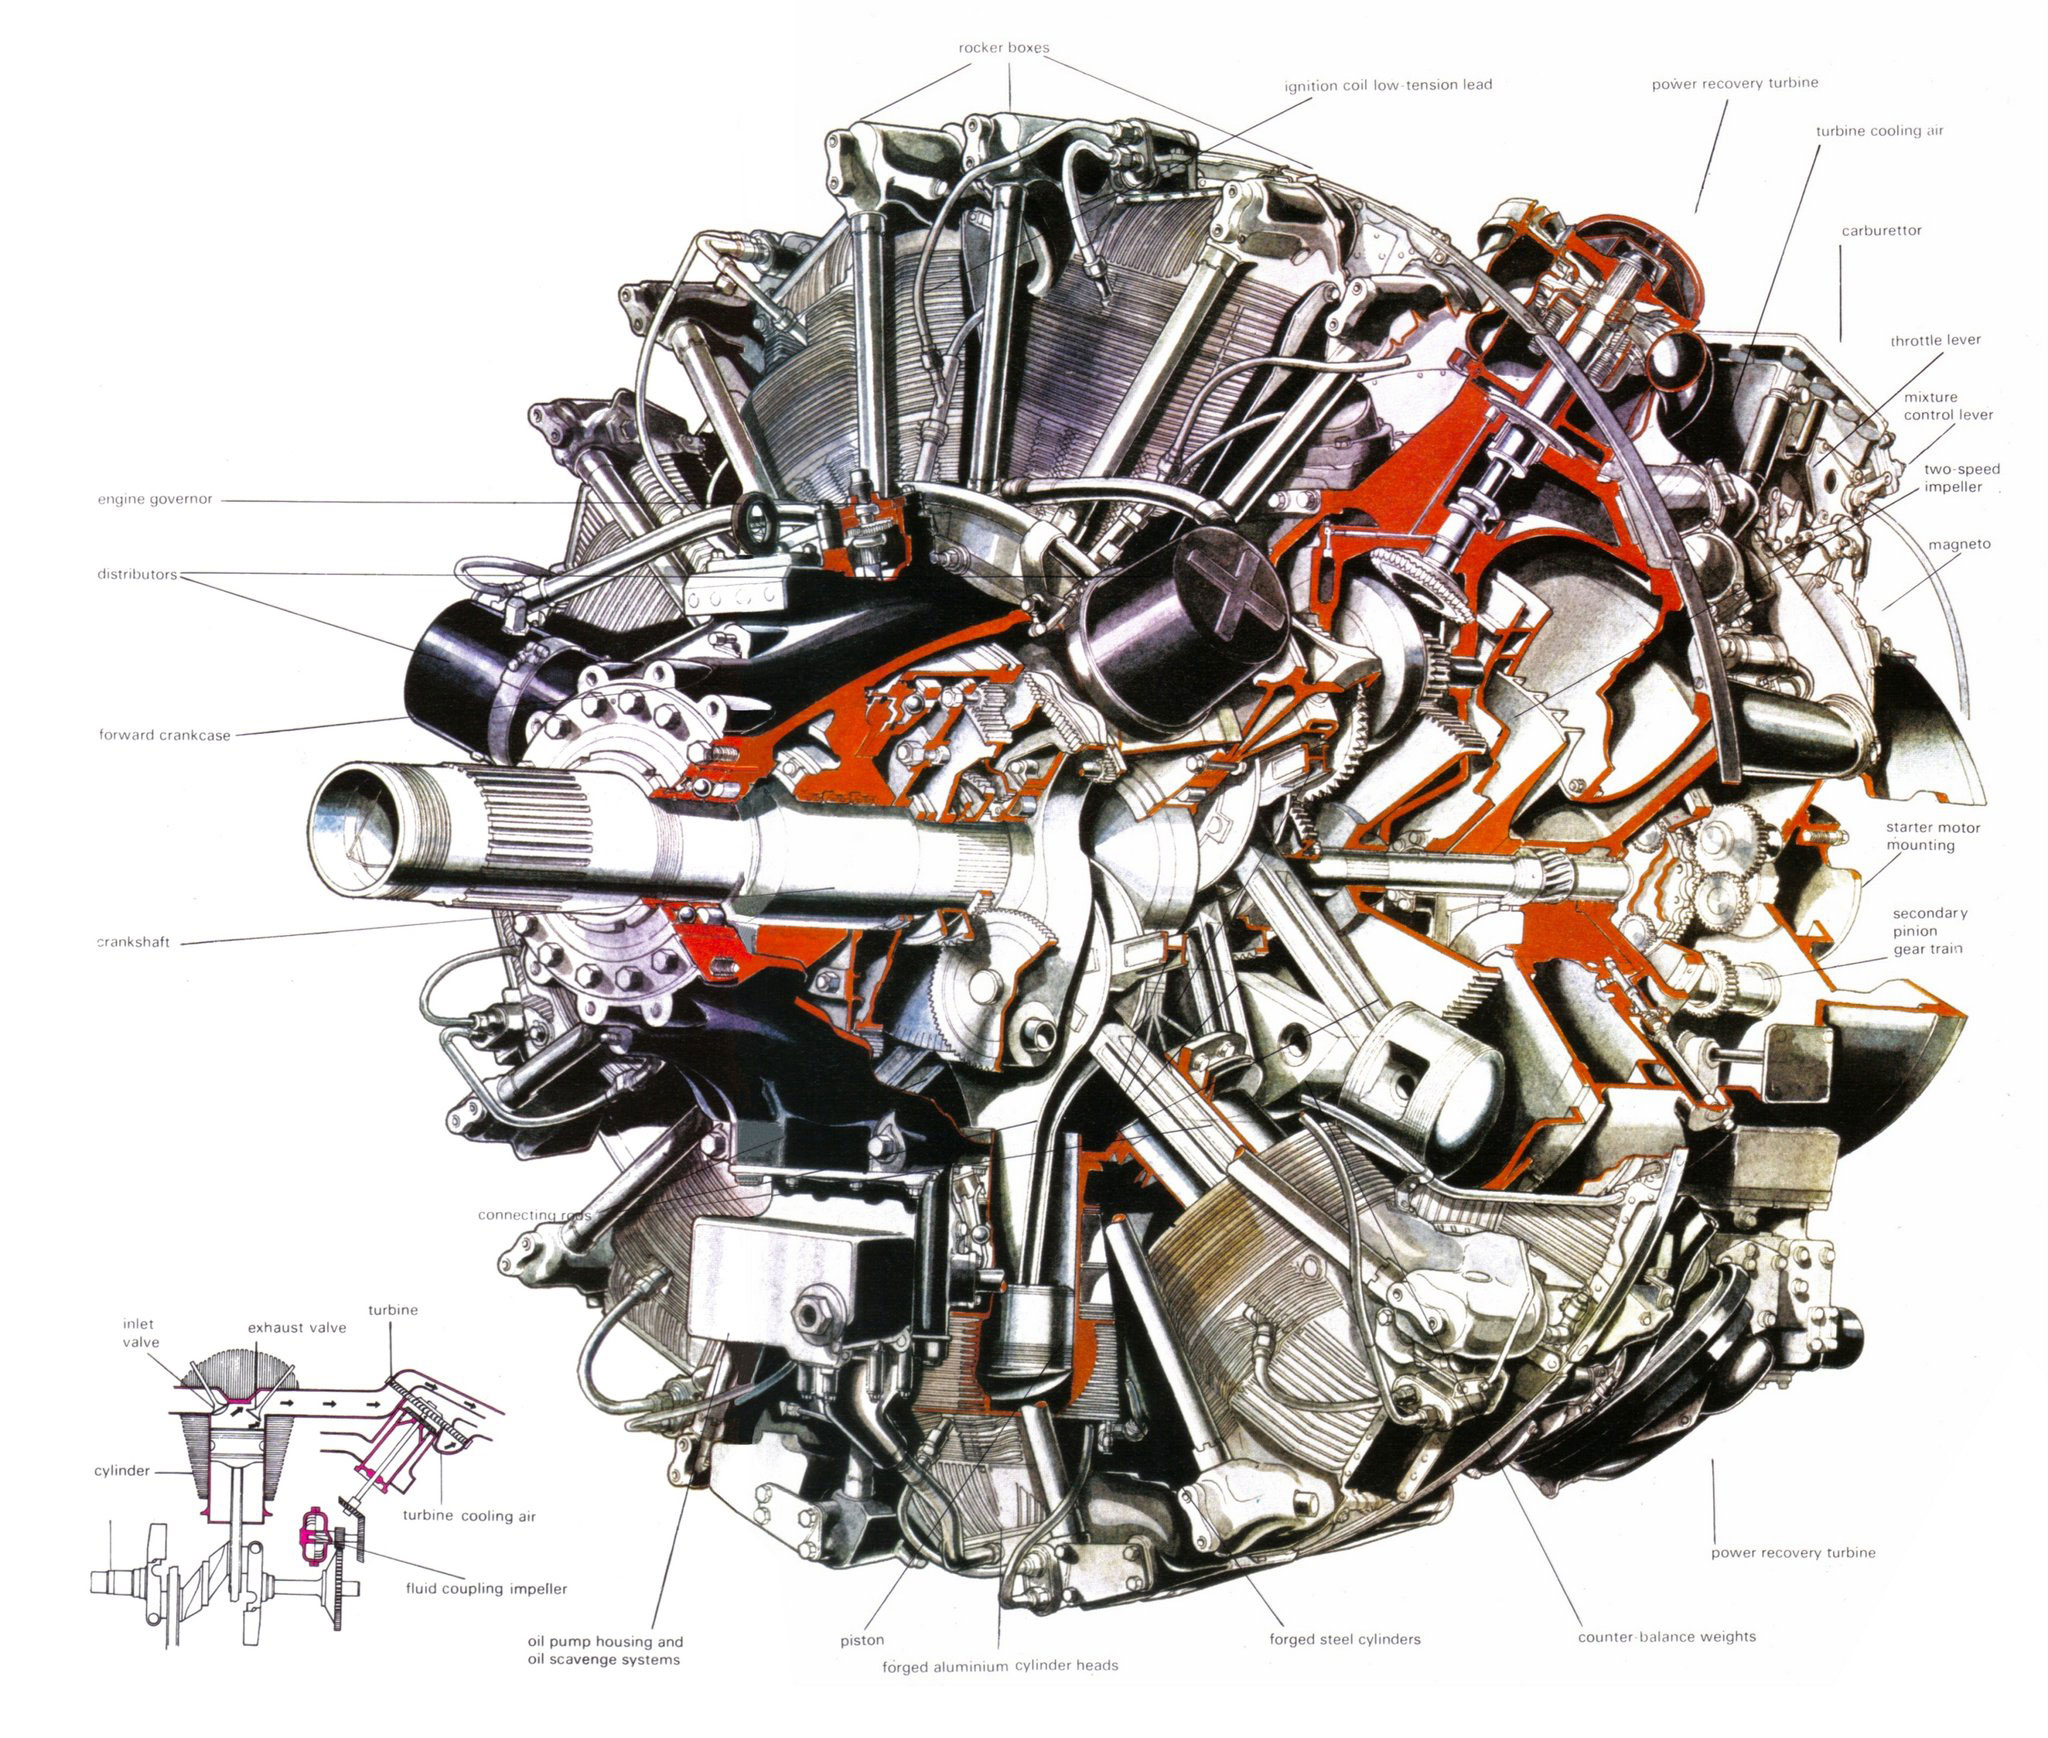 Wright R-3350 Turbo-Compound Engine cutaway drawing